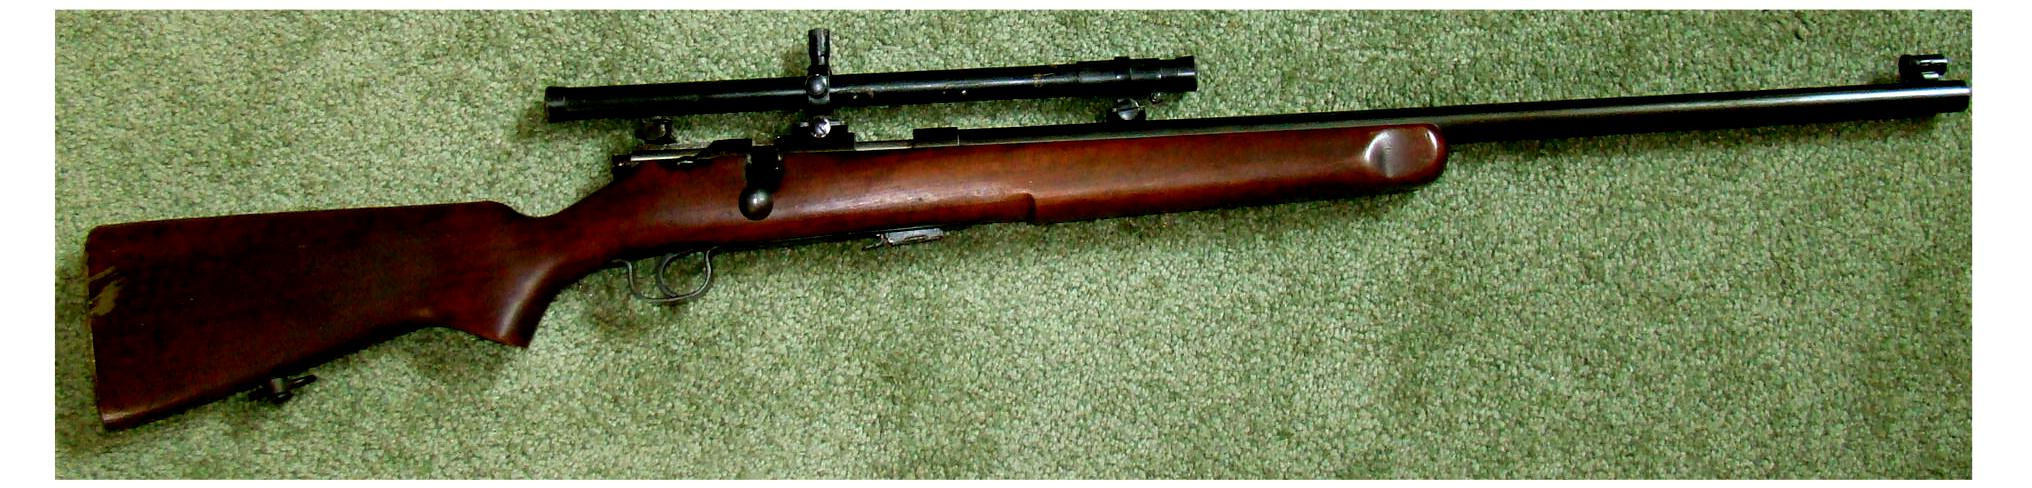 Click image for larger version.  Name:gun pic's (14).JPG Views:30 Size:201.5 KB ID:369427